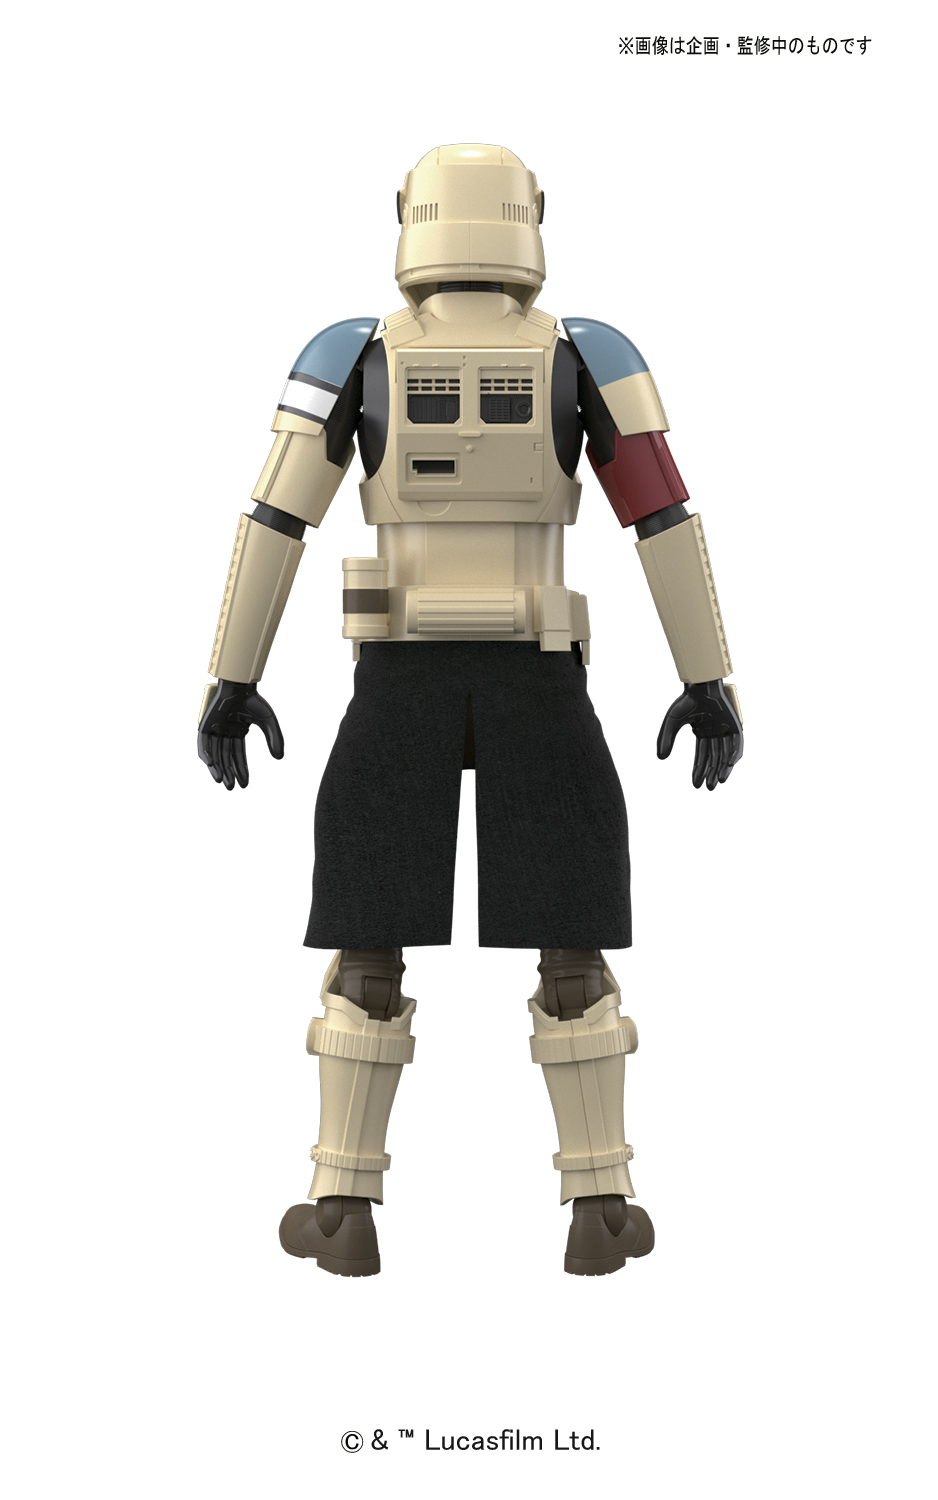 12_shore_trooper_06.jpg